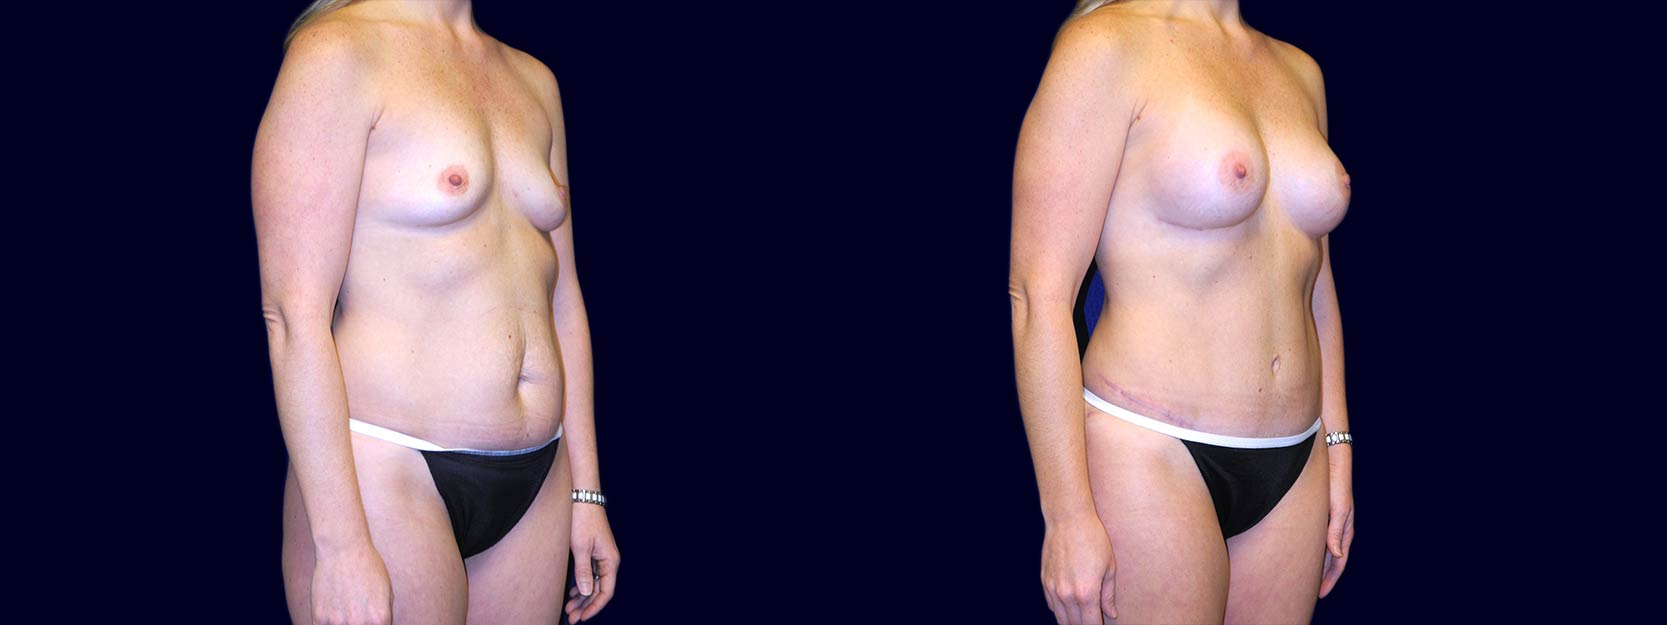 Right 3/4 View - Breast Augmentation and Tummy Tuck After Pregnancy